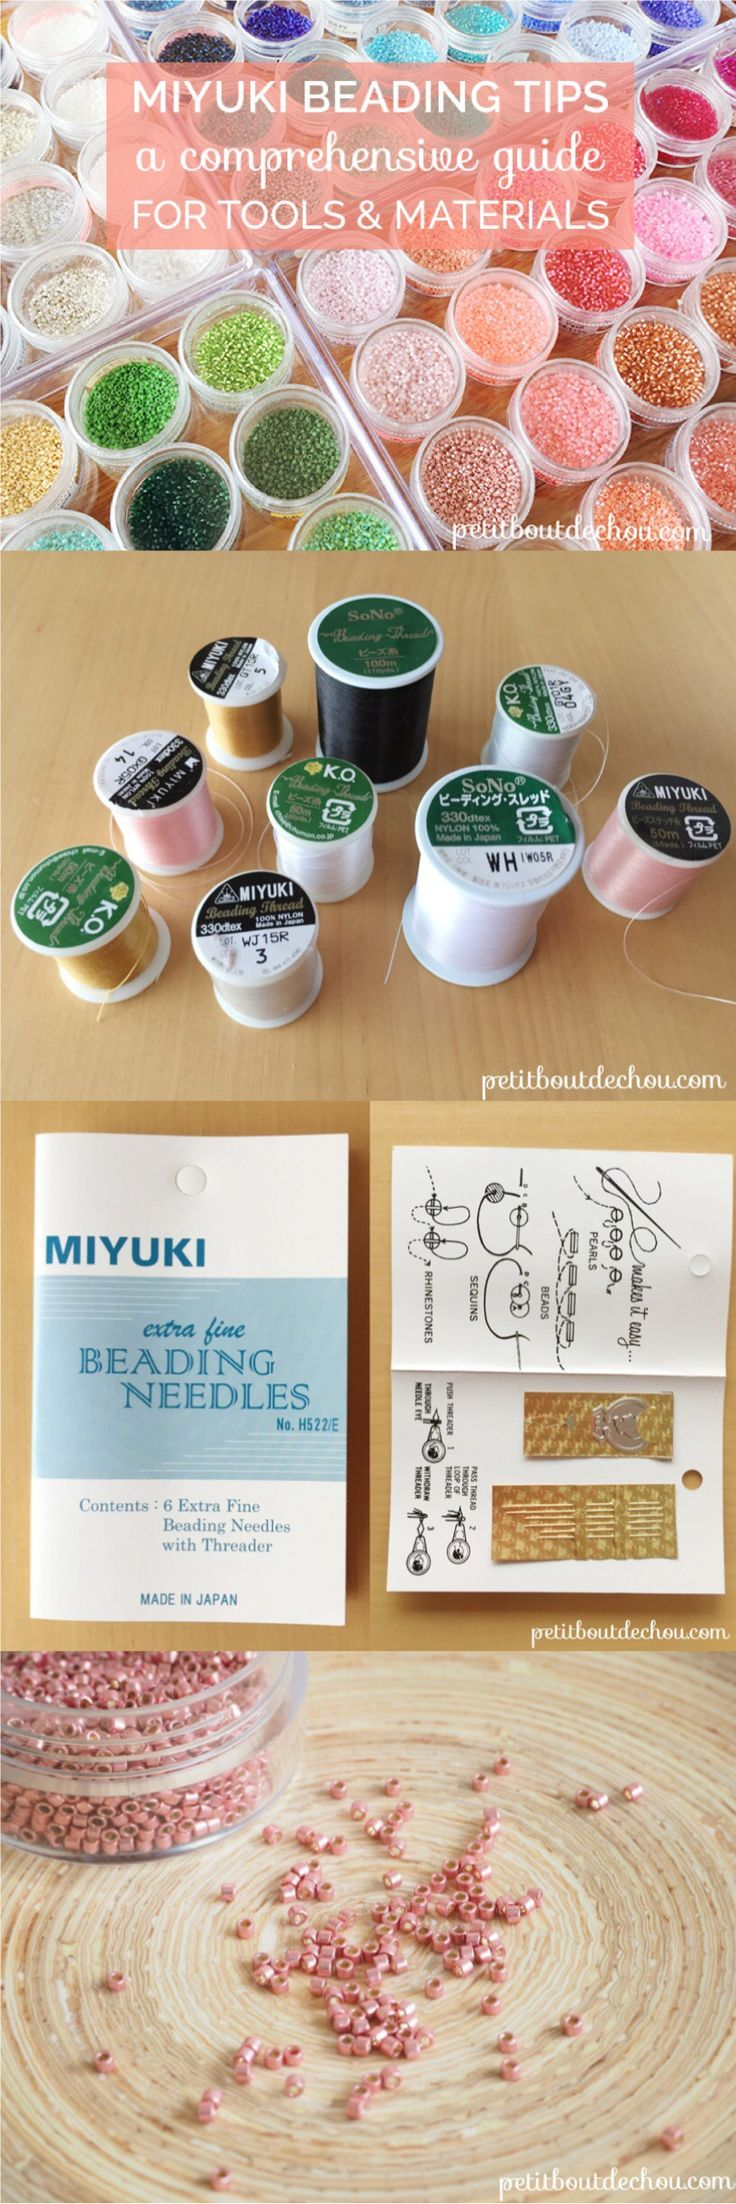 Whether you are a beginner or a confirmed Miyuki bead lover, this informative guide will help you choose the right beading equipment and discover great tips for your beading activity!